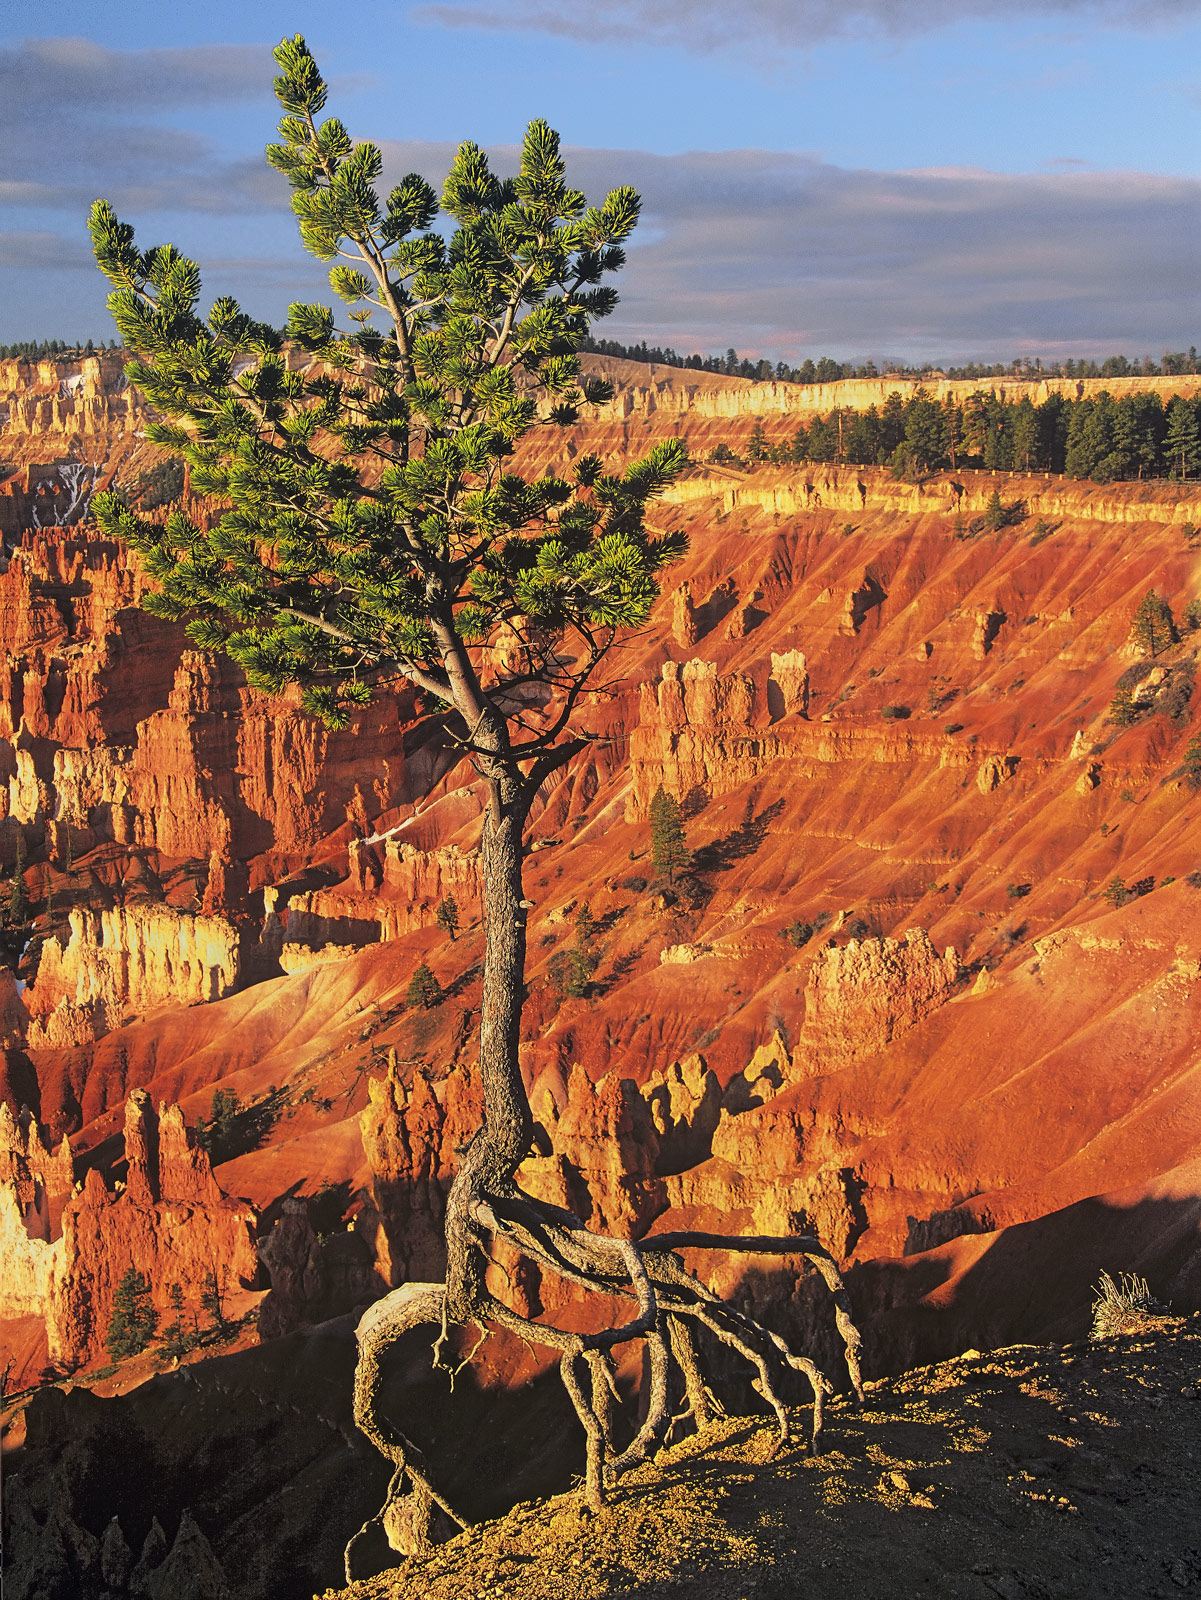 Bryce canyon was my favourite National park I have never seen such an awe inspiring landscape on such a vast scale. The...